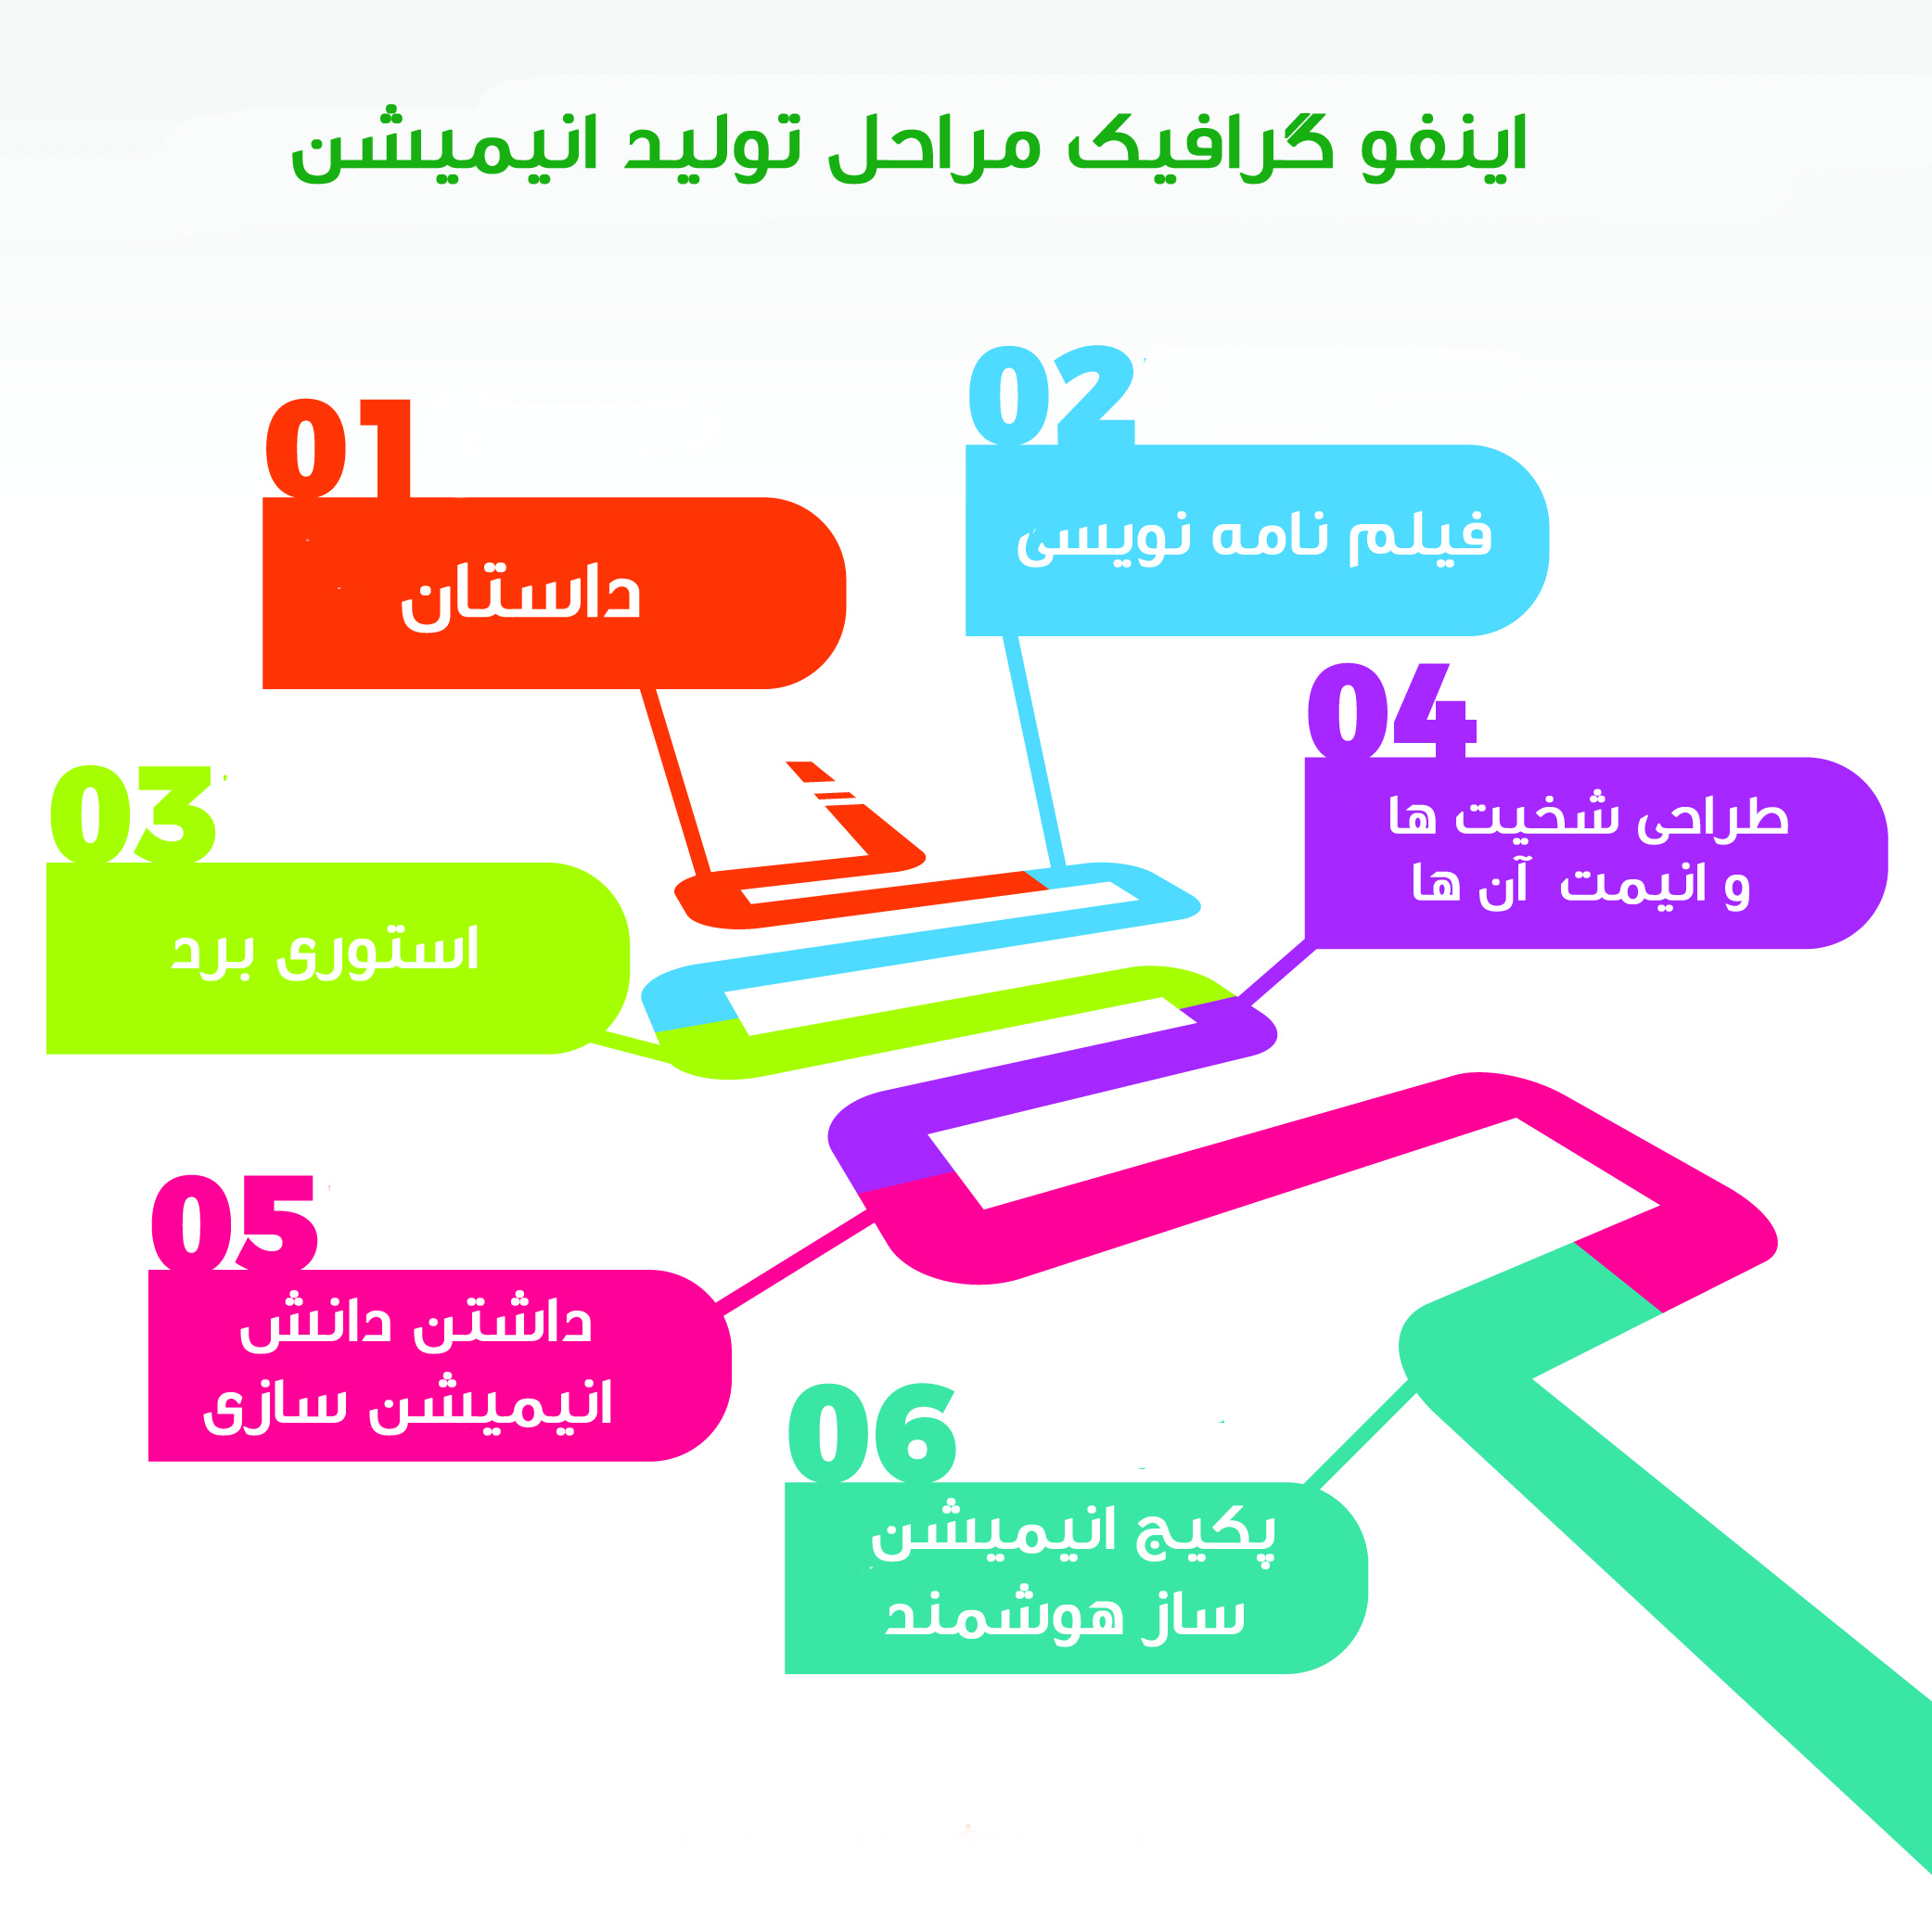 120295 OPS6H7 447 - پکیج انیمیشن ساز هوشمند ۰ تا ۱۰۰ موهو